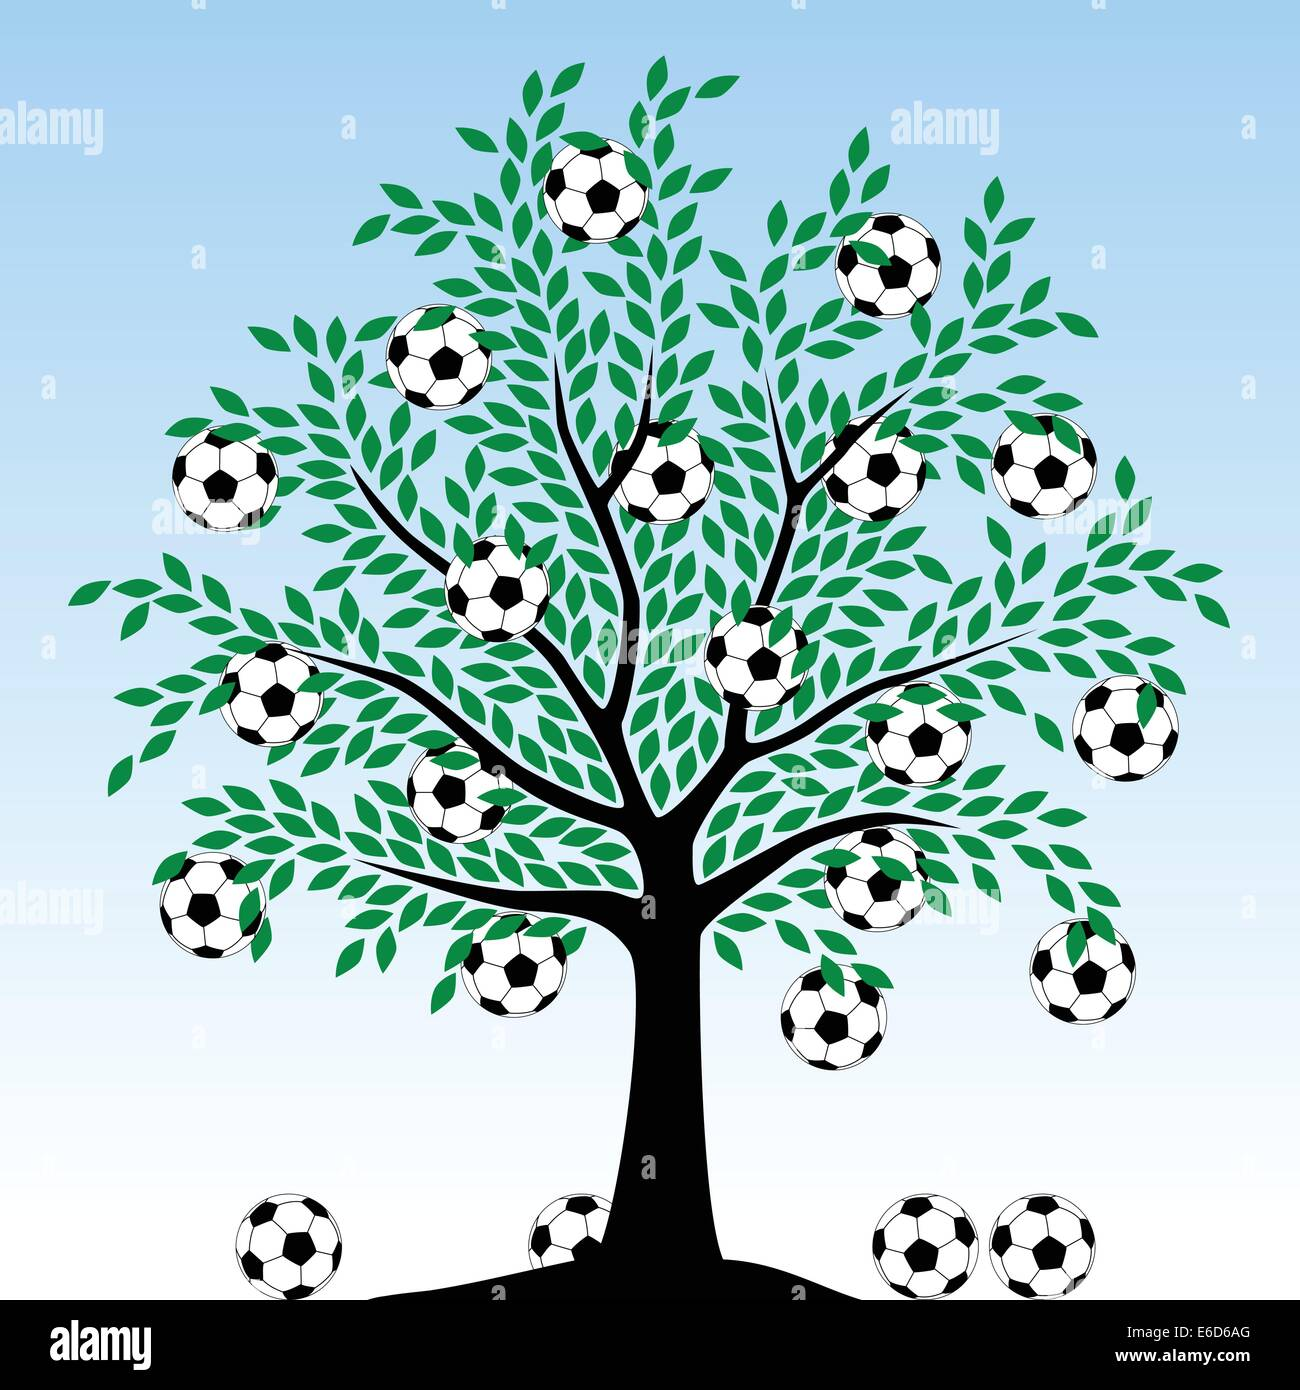 Editable vector illustration of a tree with football fruit - Stock Vector